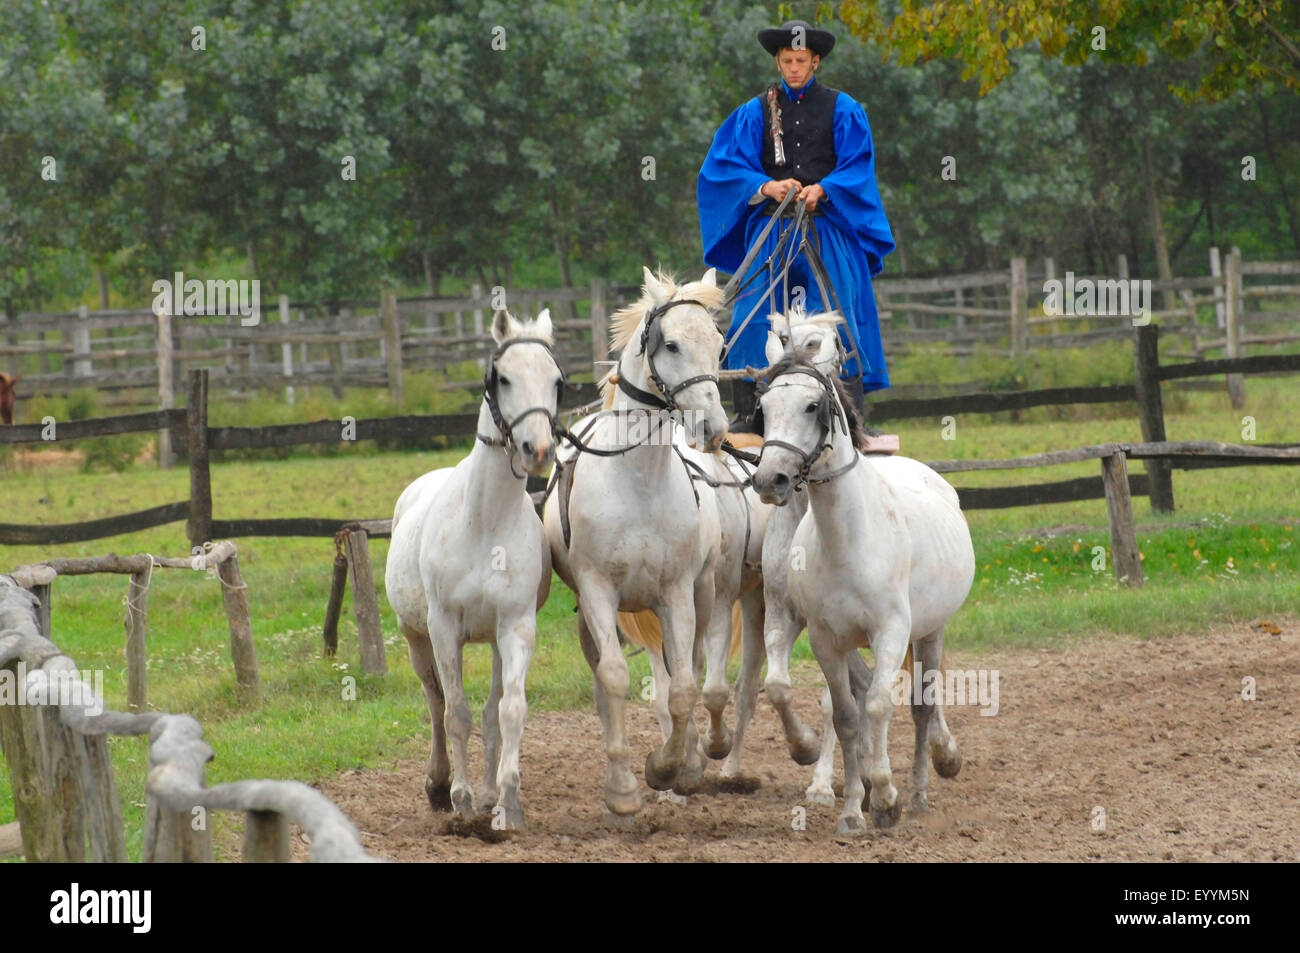 domestic horse (Equus przewalskii f. caballus), dressage exhibition of a horse herdsman in the puszta, Hungary, Stock Photo